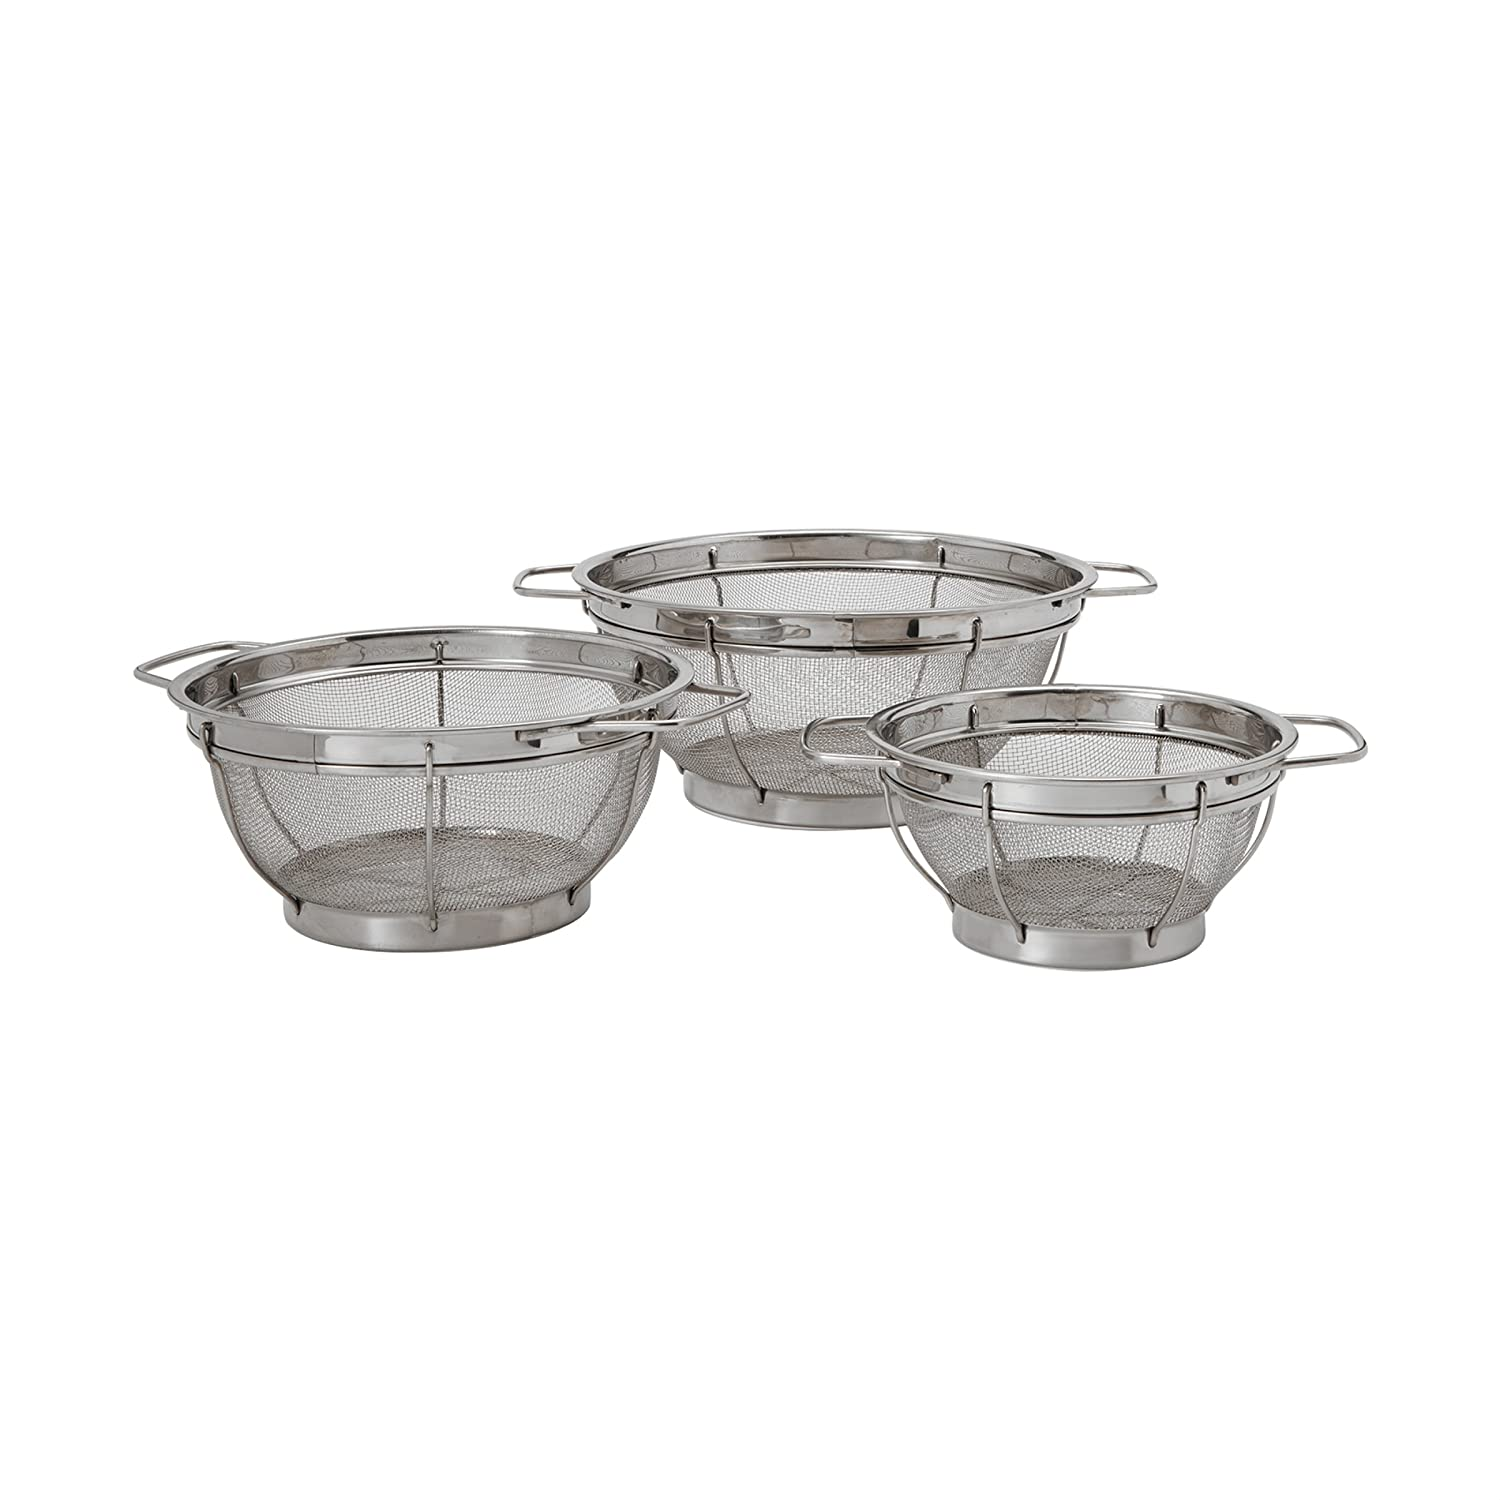 Farberware Stainless Steel Colander Sieves - Set of 3, Multi Sized 5181490